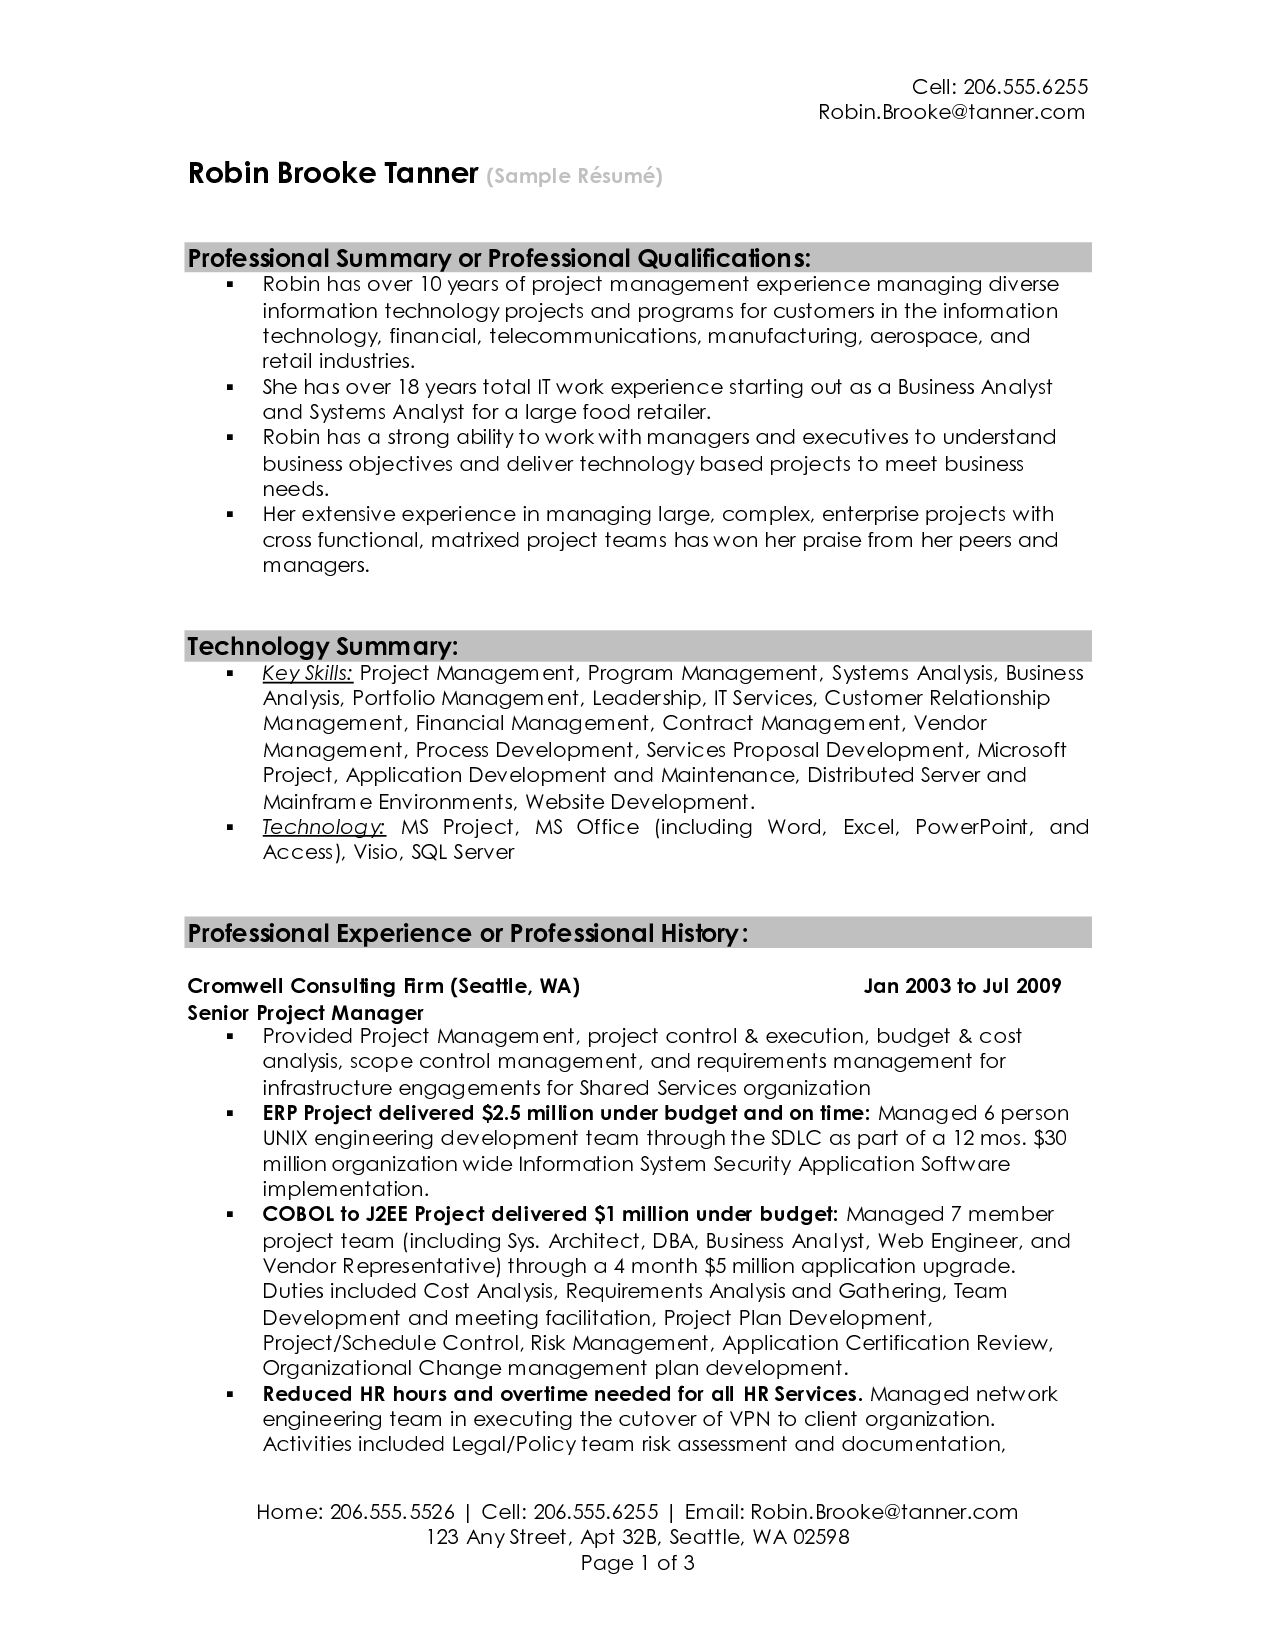 Sample Resume Summary Professional Summary Resume Examples Professional Resume Summary